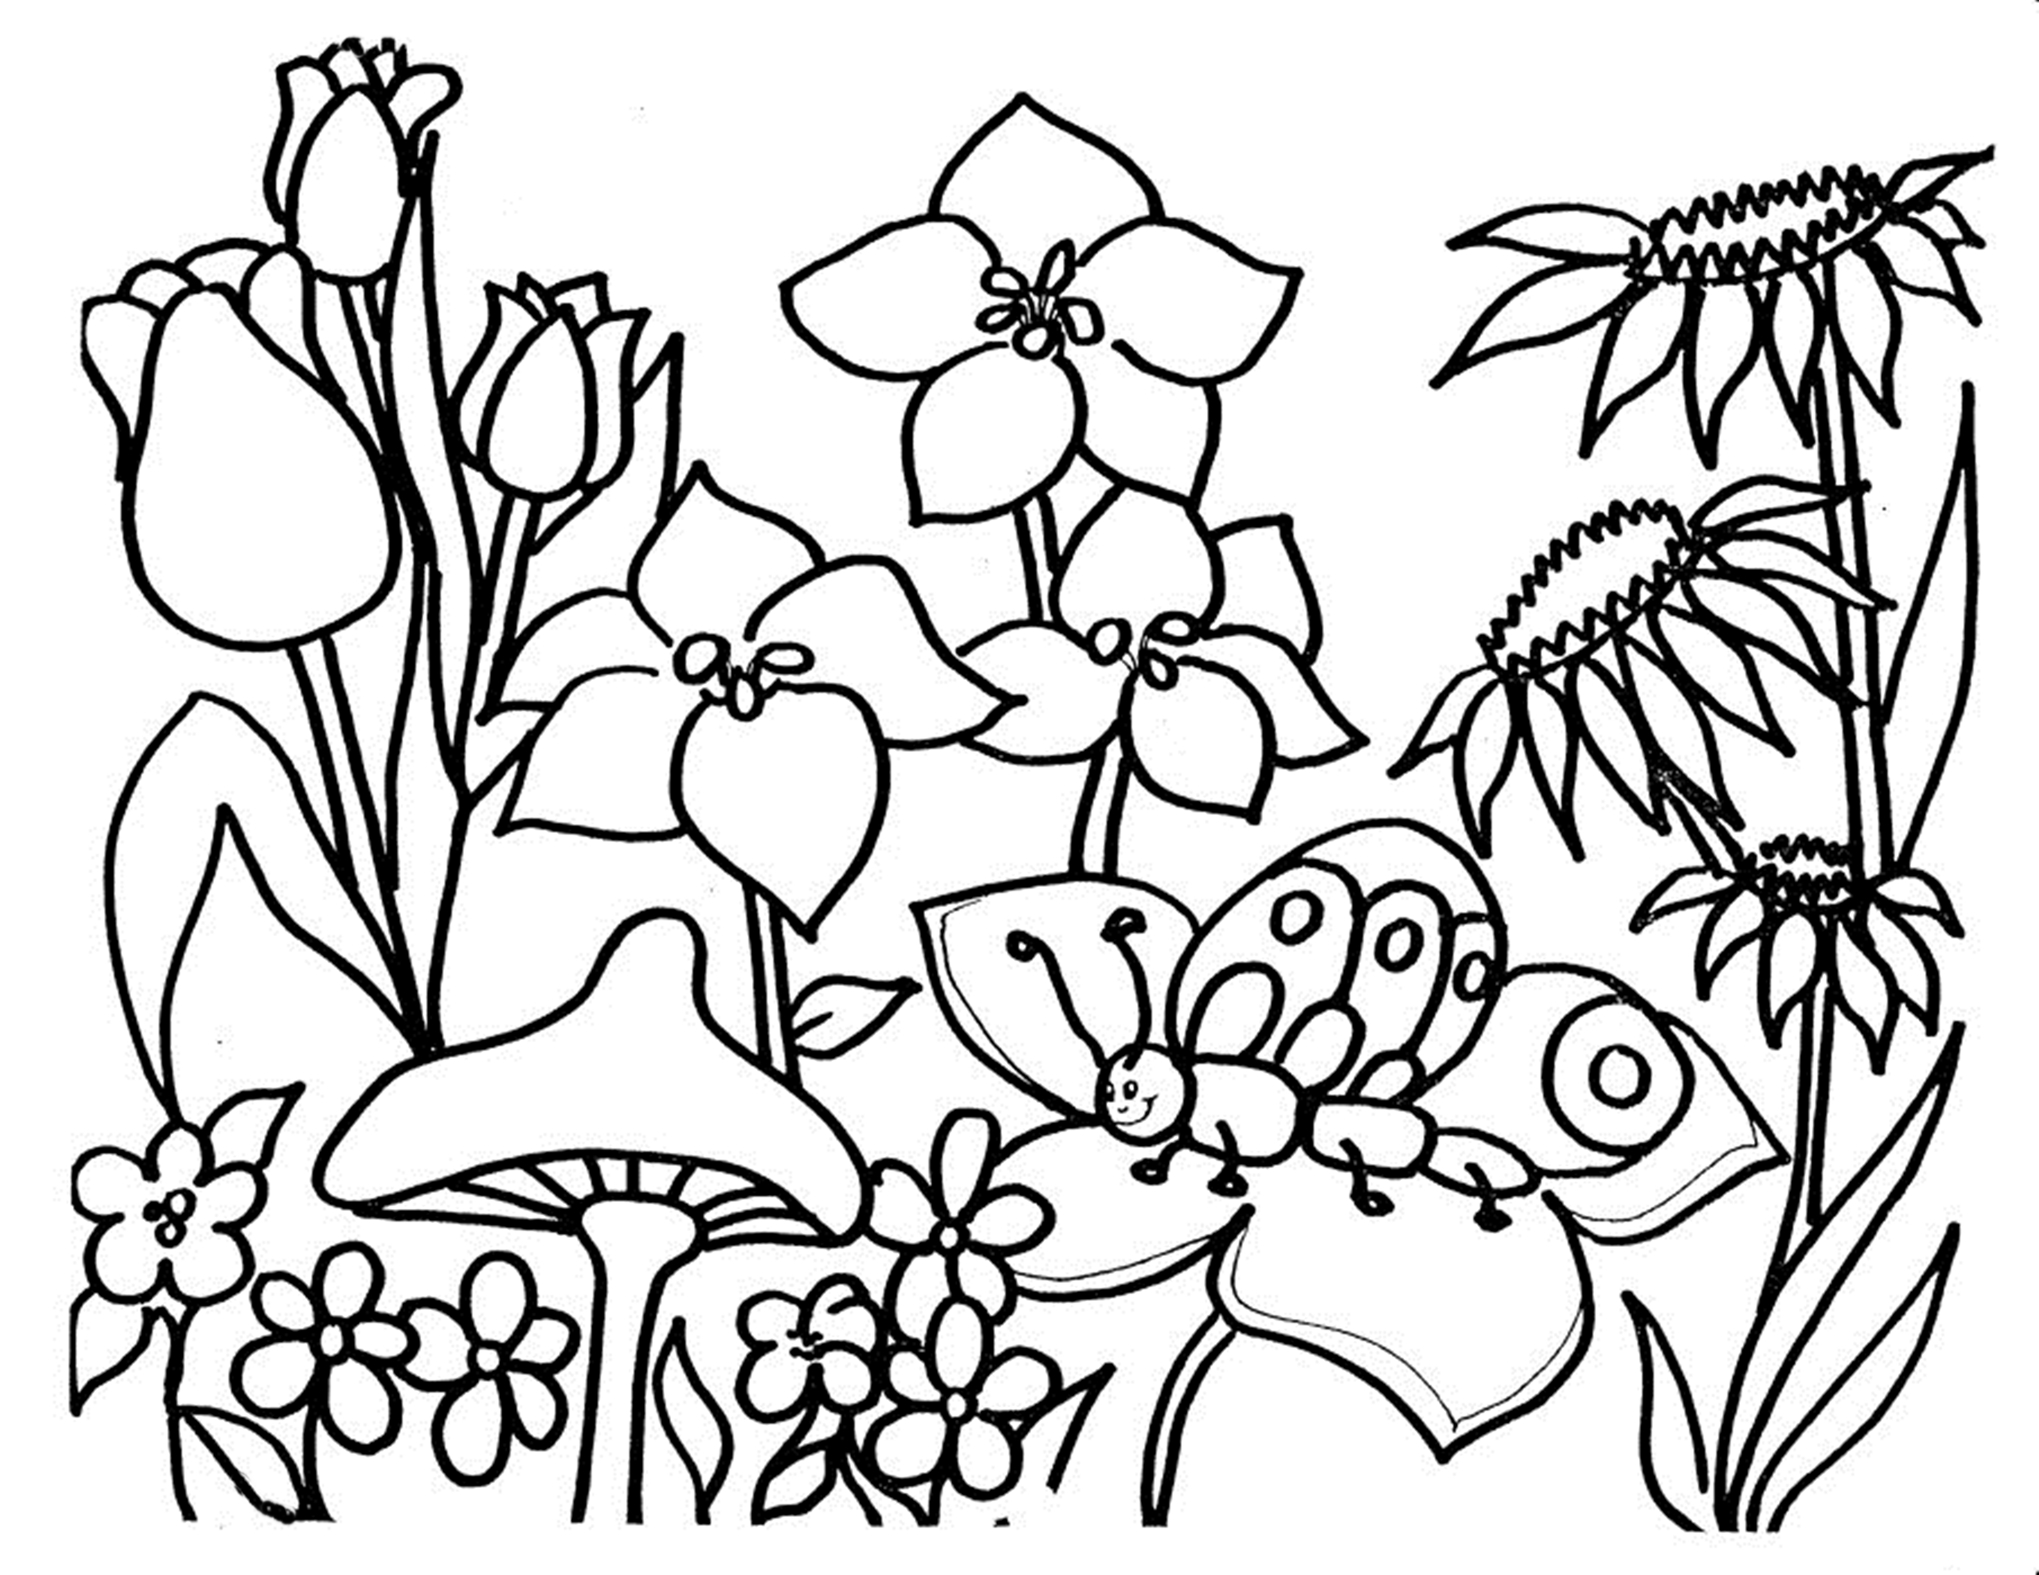 images of flowers to color flower coloring printables for kids color flowers images to of